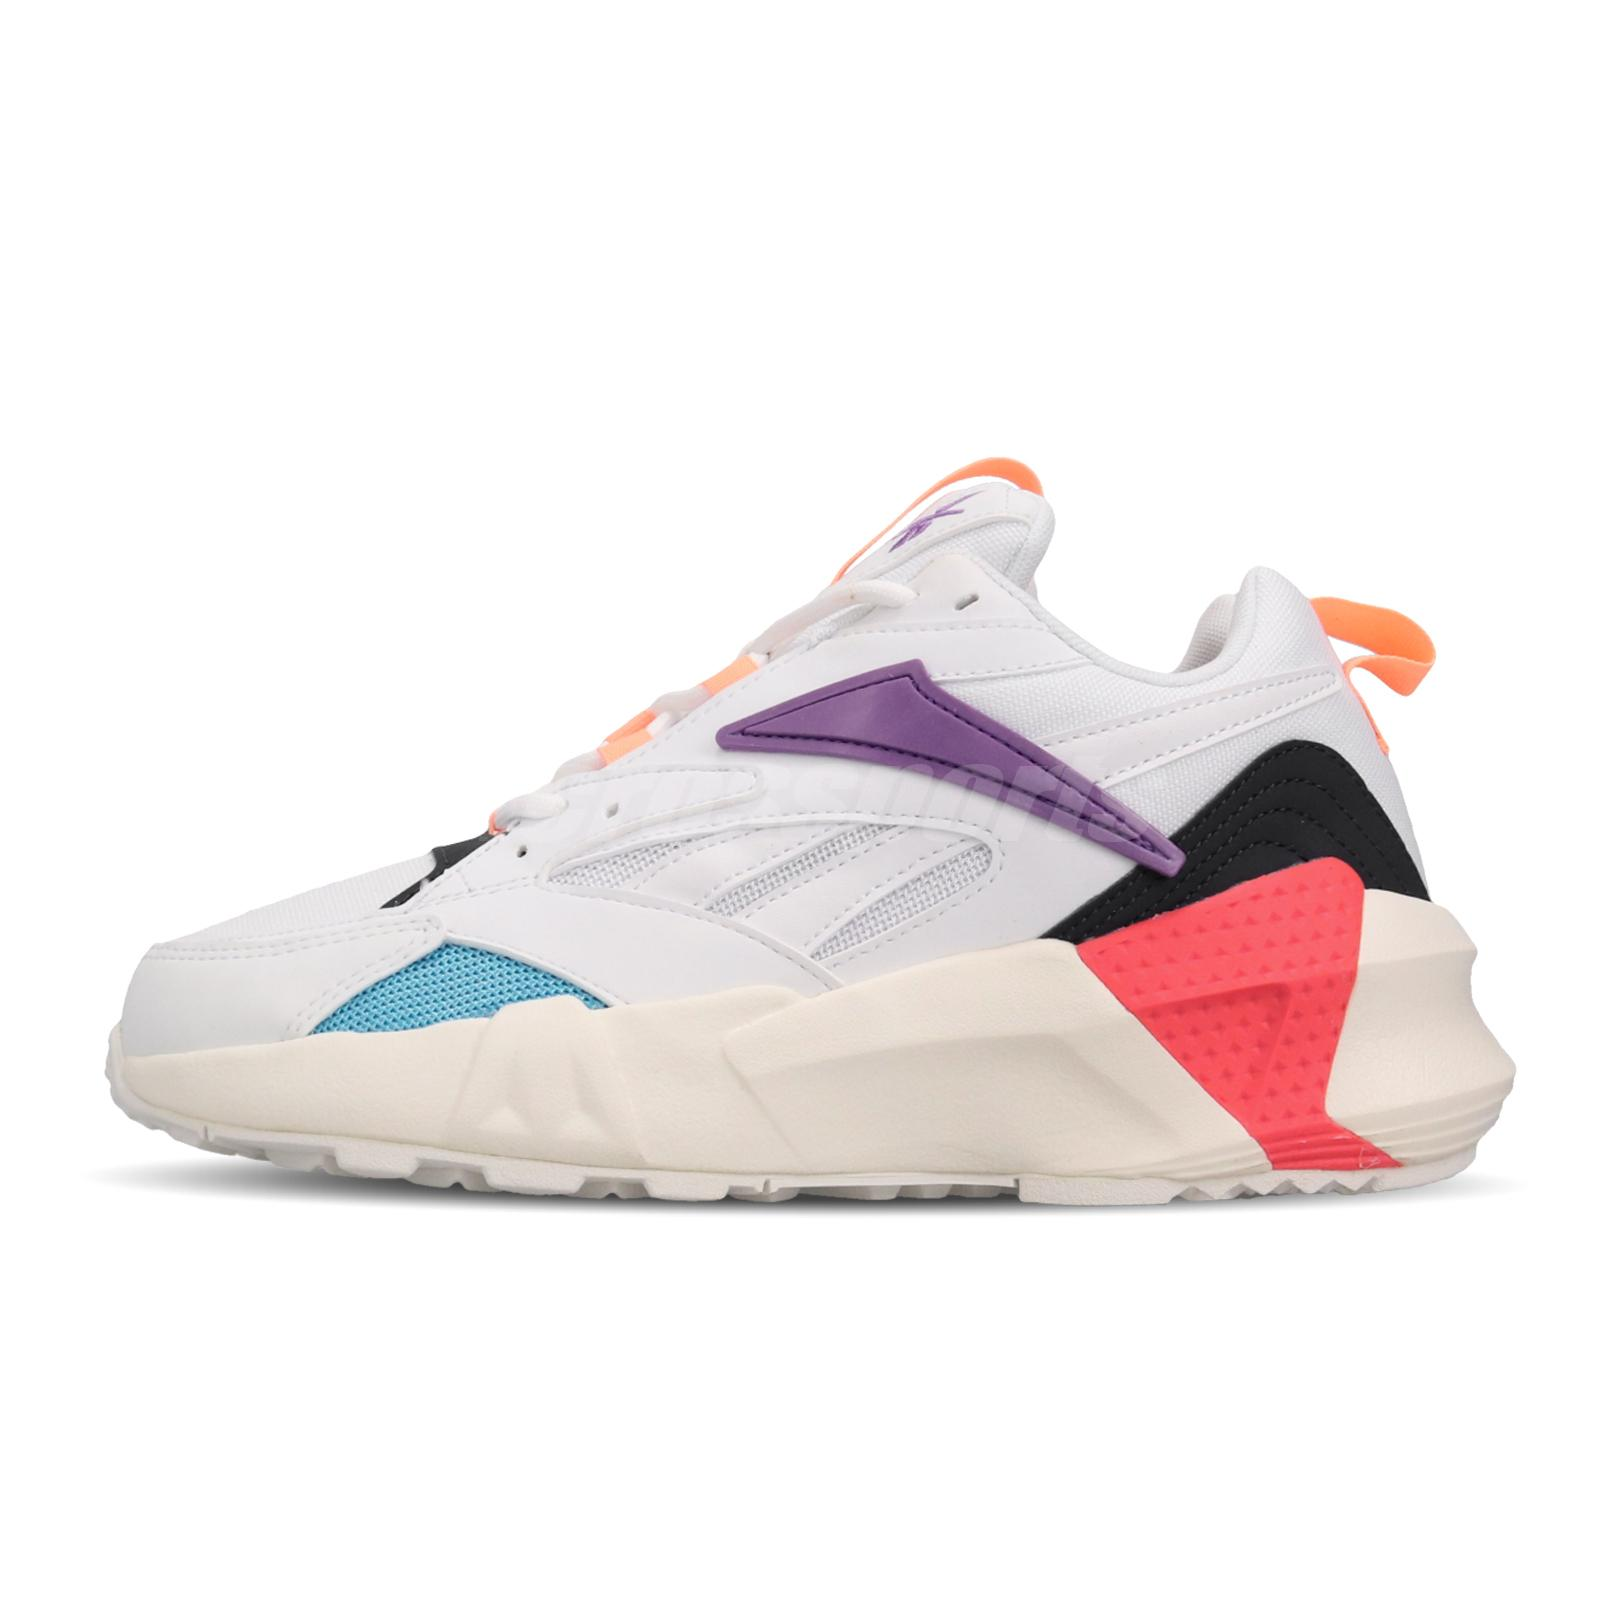 Details about Reebok AZTREK Double Mix Pops White Purple Pink Womens Chunky Shoes DV8171